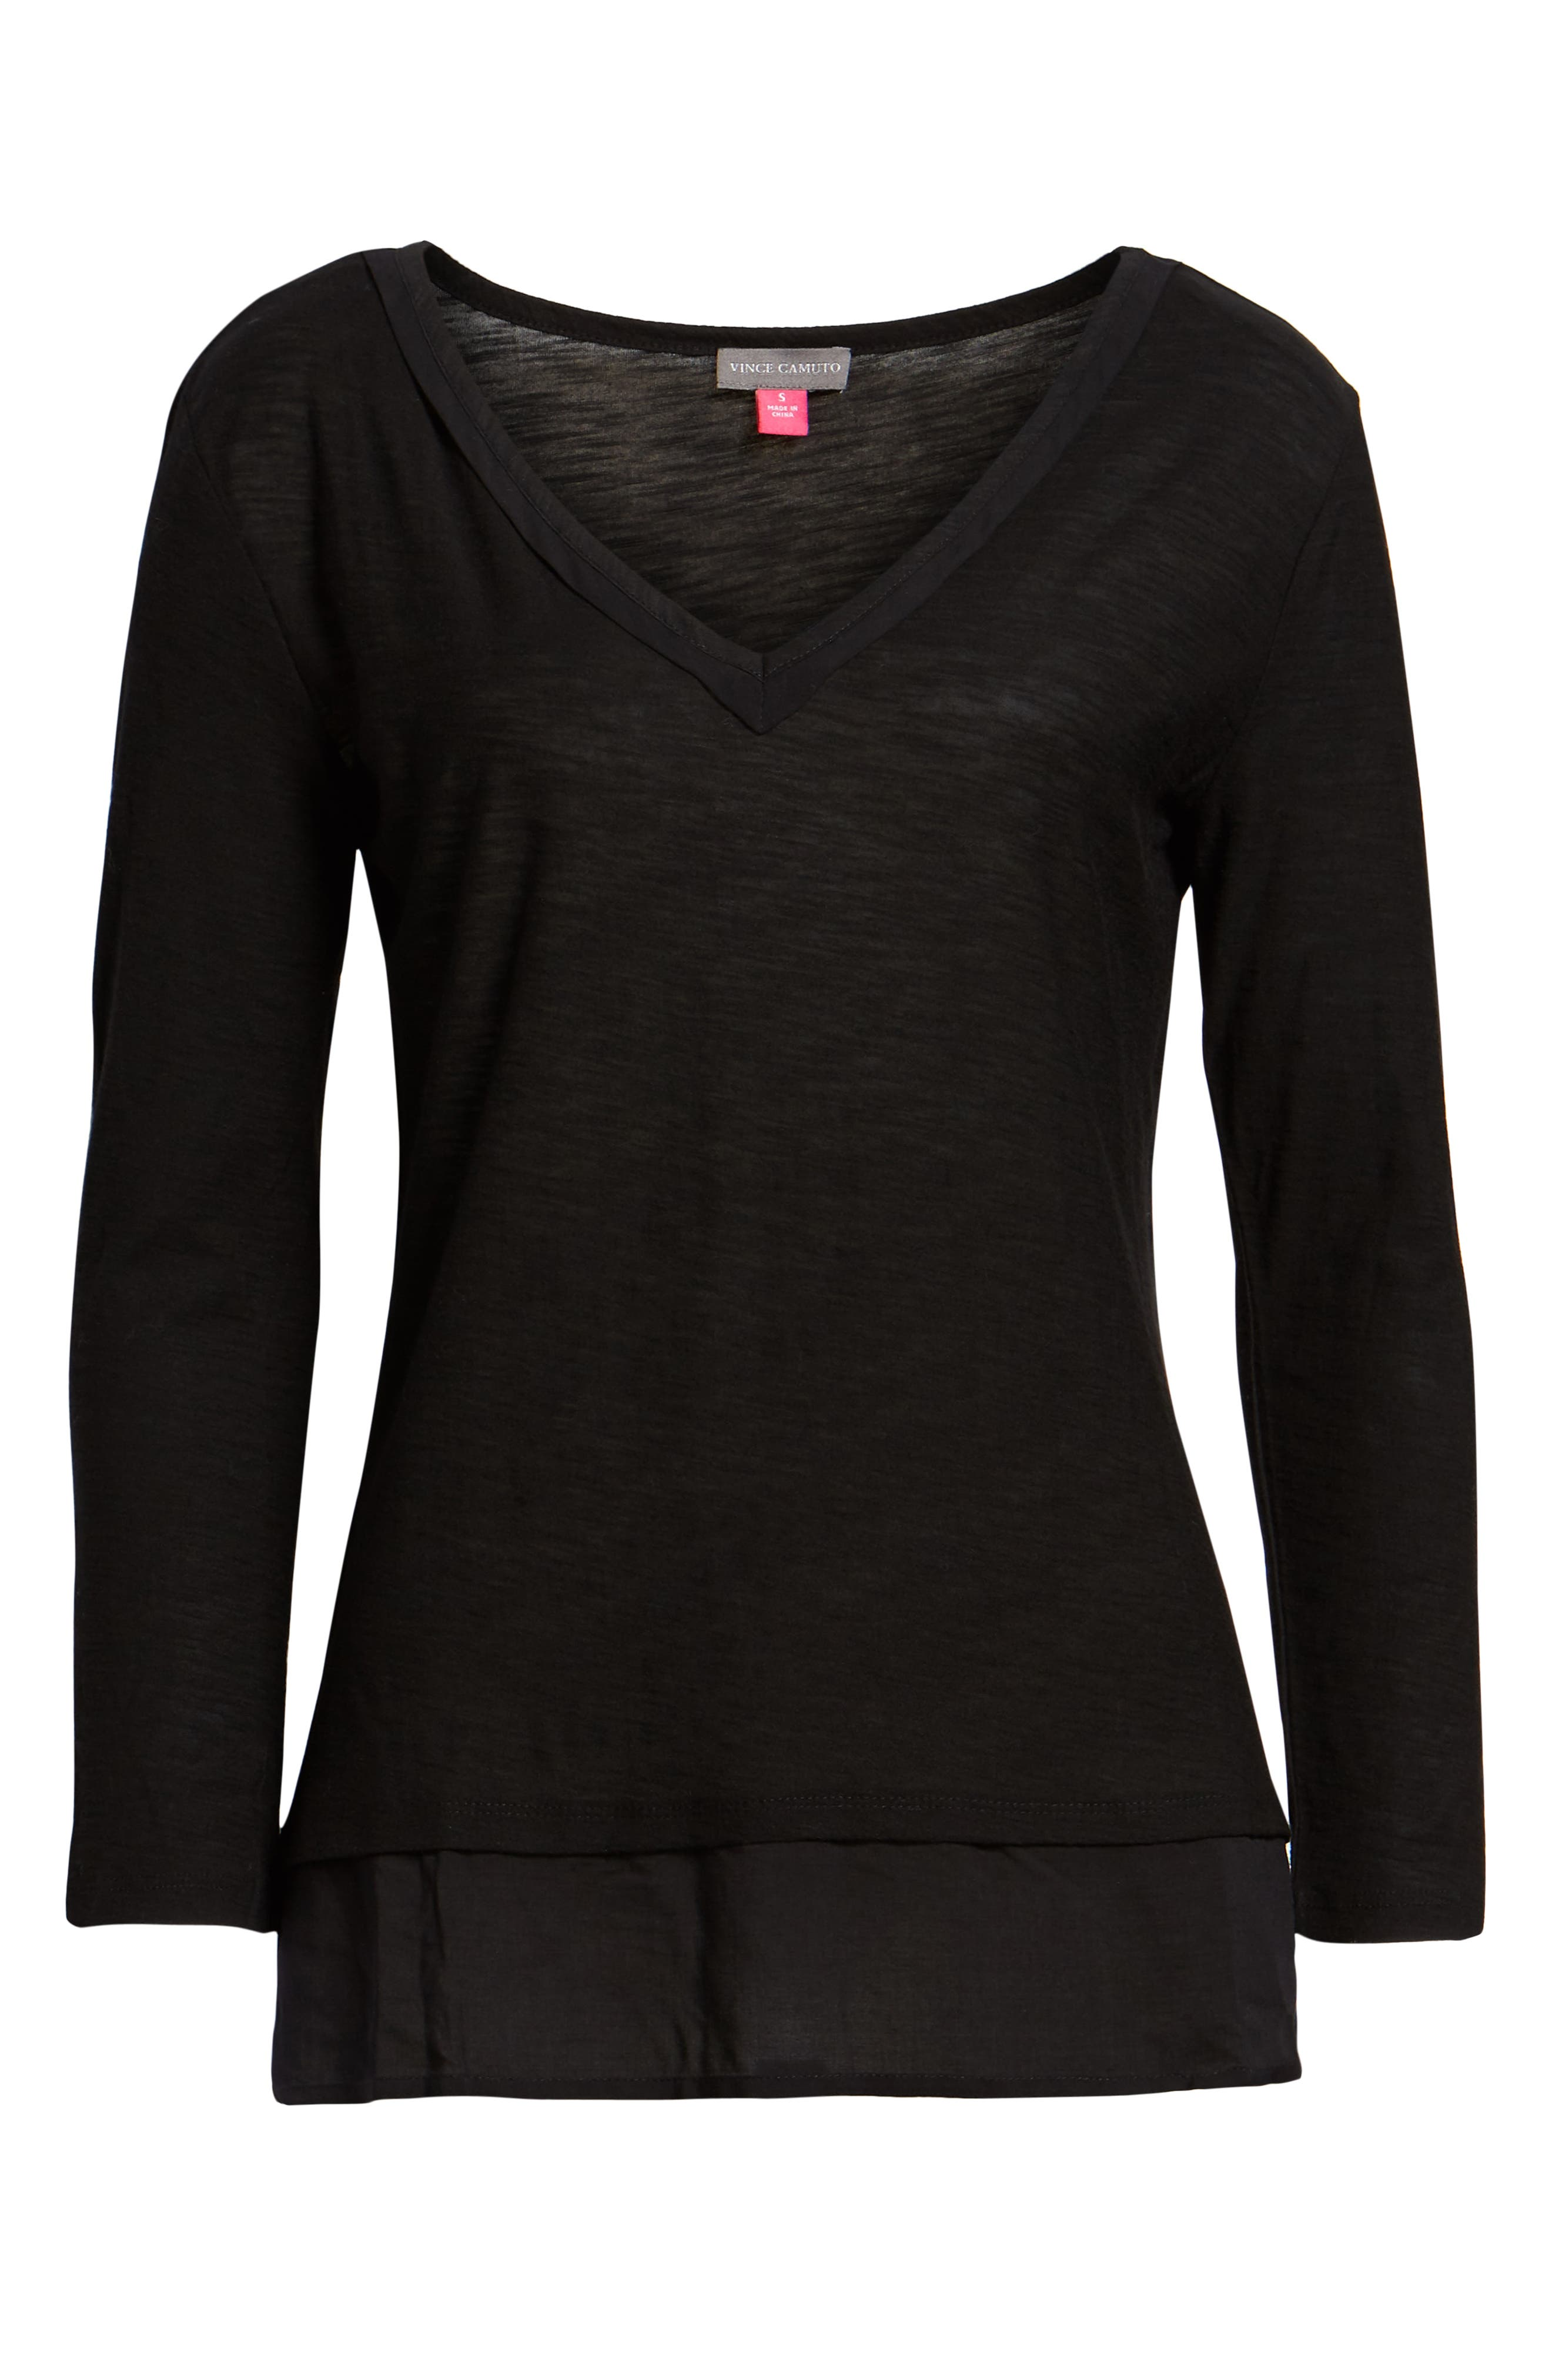 Layered Look Top,                             Alternate thumbnail 3, color,                             RICH BLACK